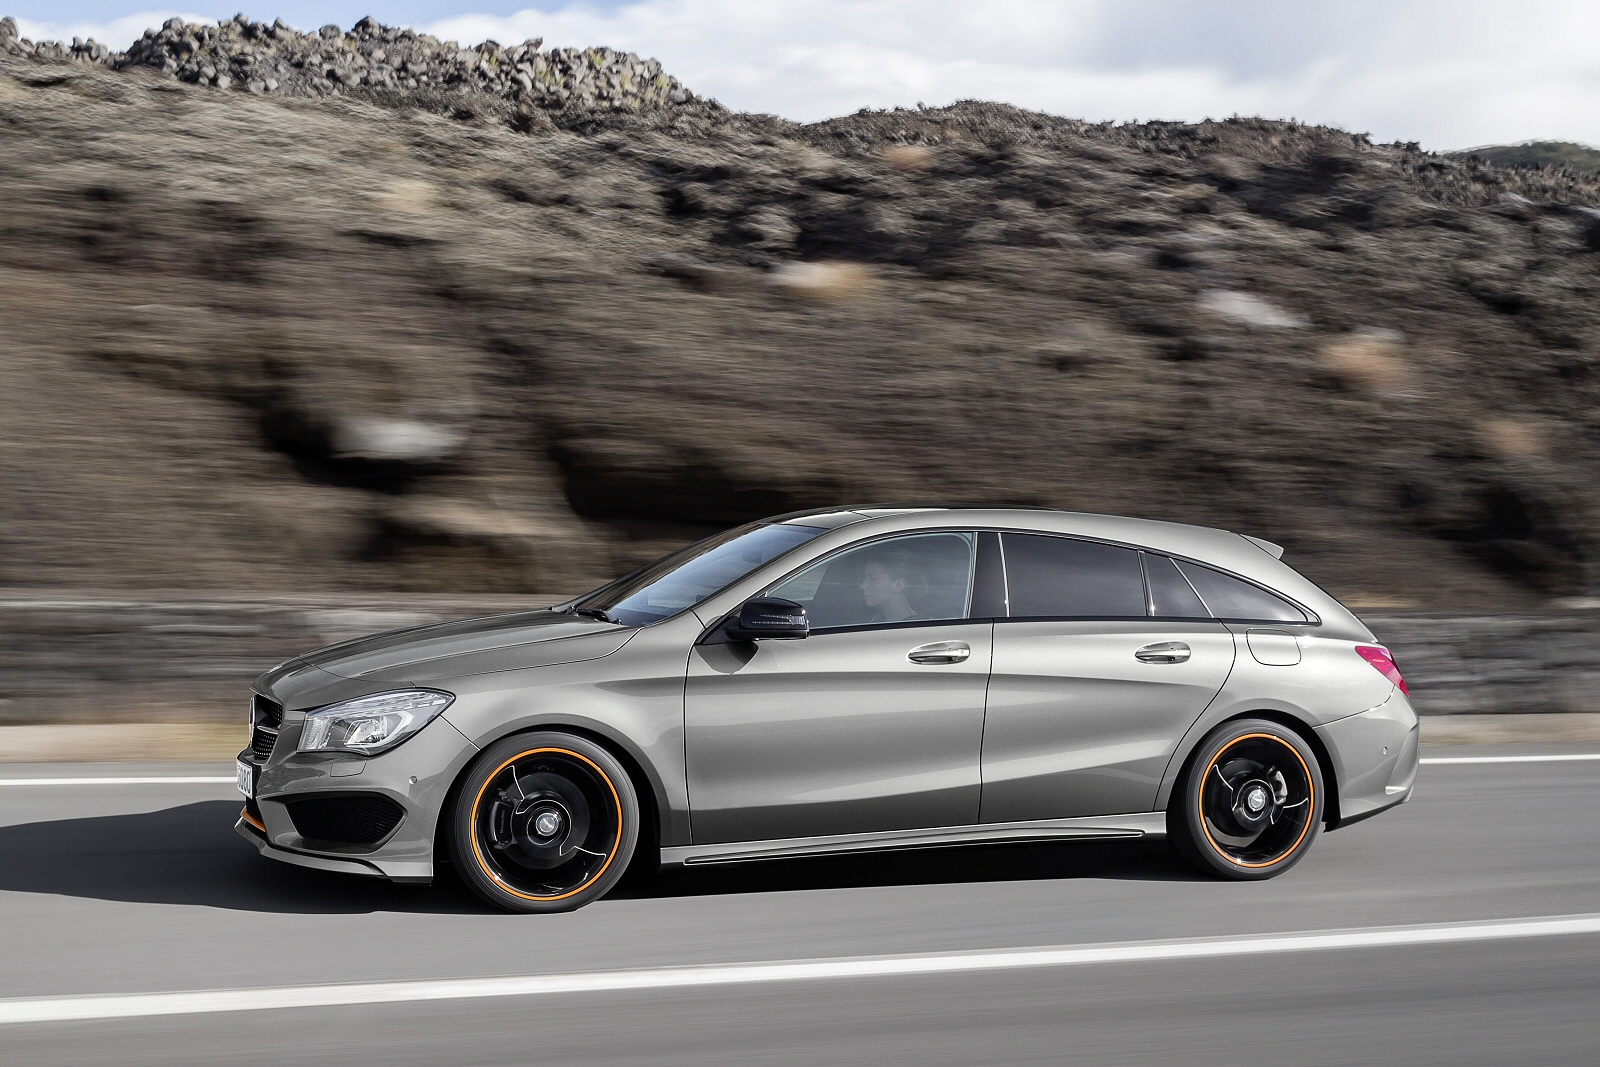 Mercedes C-Class Estate 2014 exclusive pictures | Mercedes C-Class ...